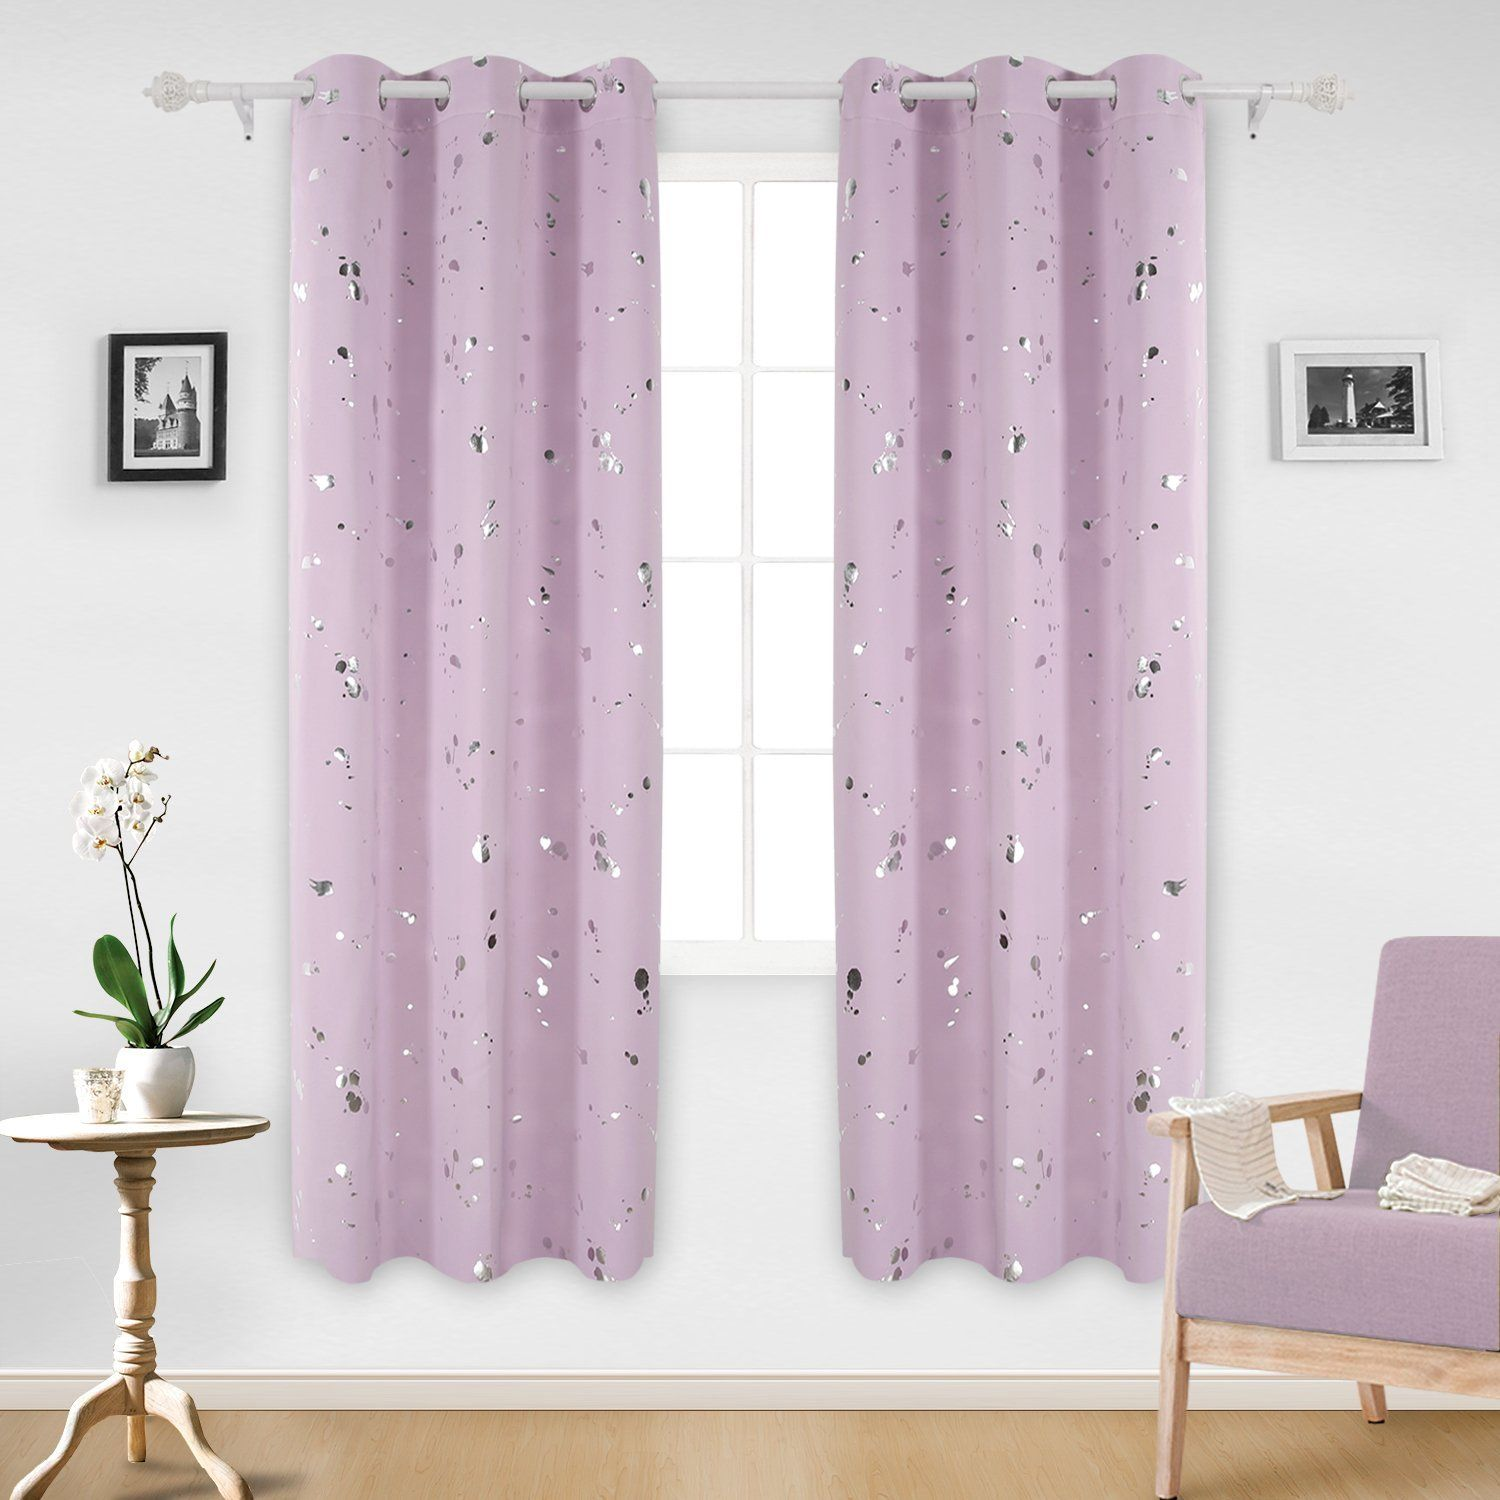 kids little curtain of cool curtains best pink boys luxury bedroom girls decoration for room colorful be new lovely purple living